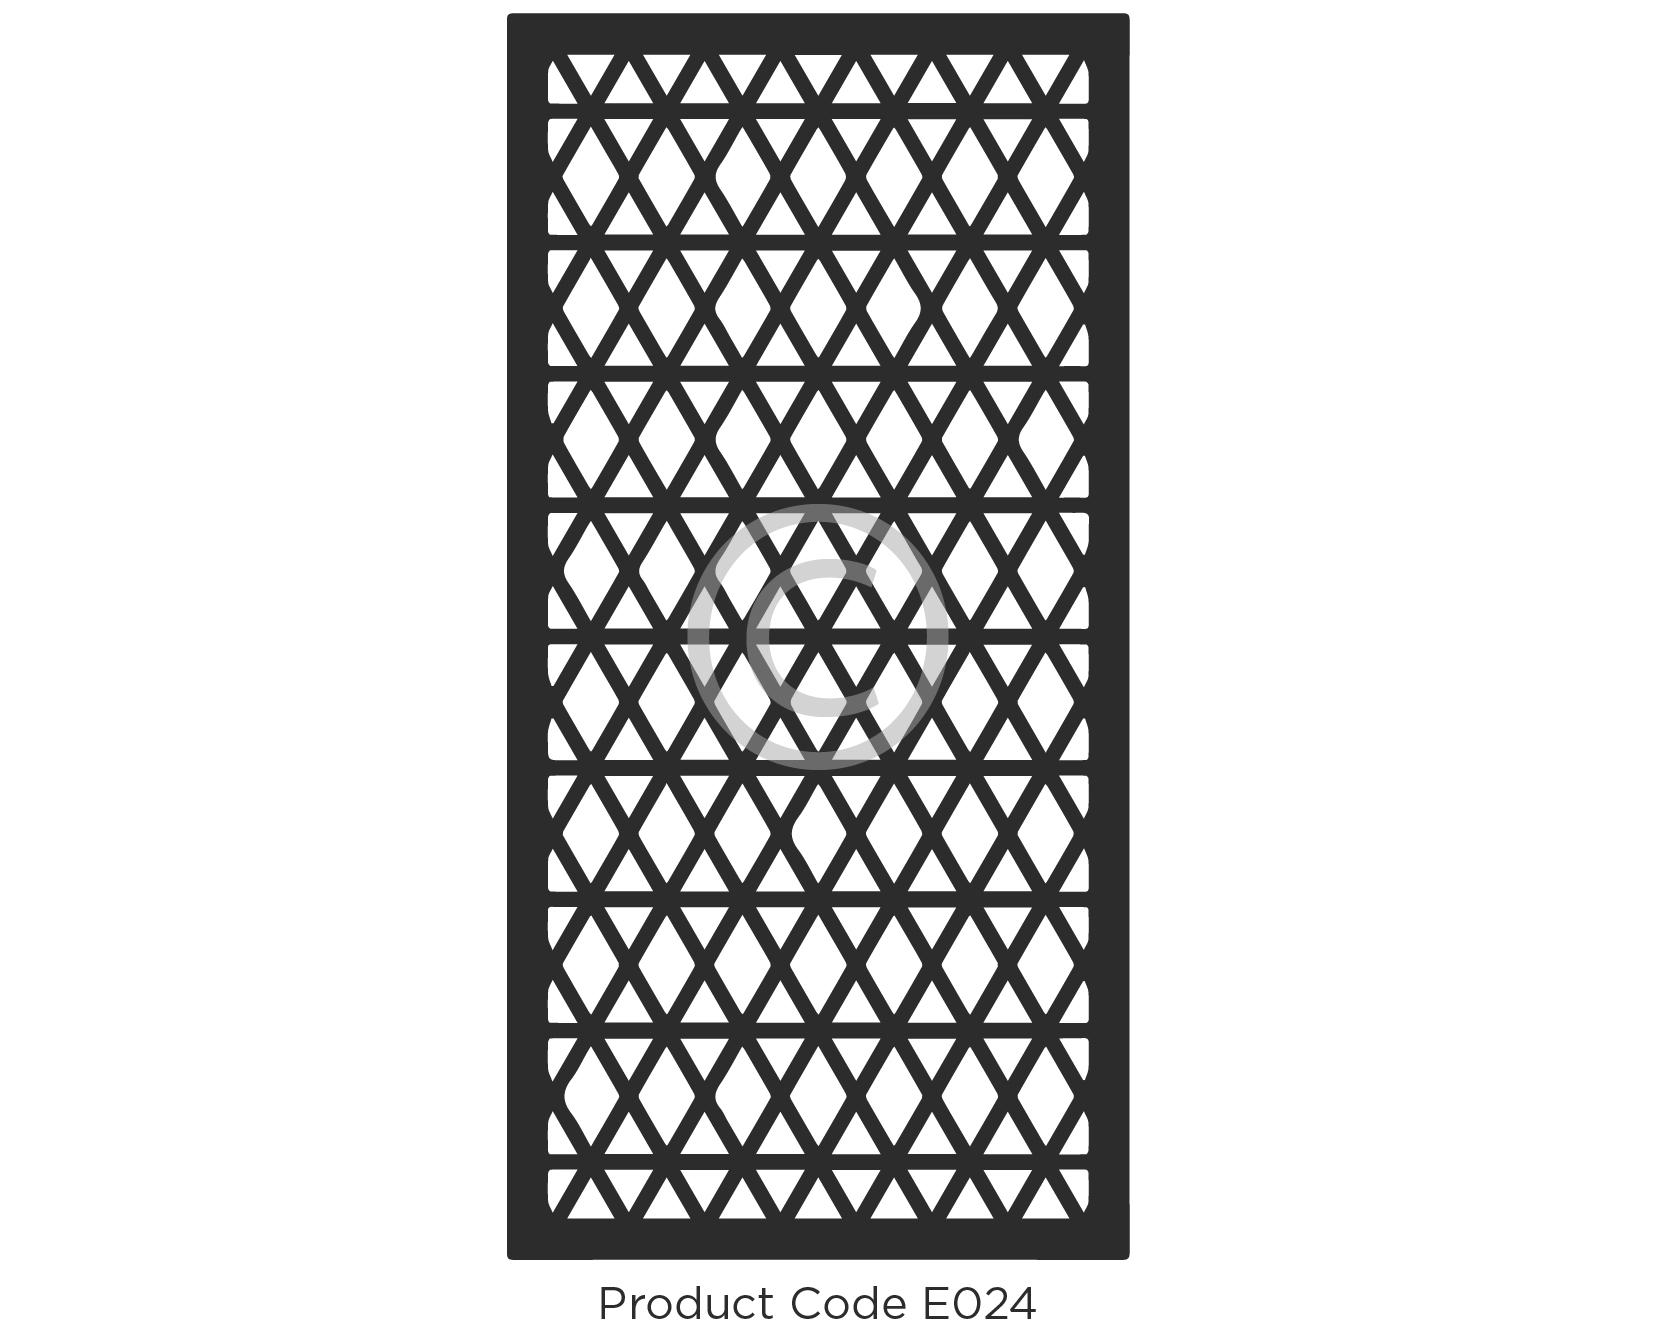 Elysium Decorative Screen Product Code E024 Geometric Design of angular lines